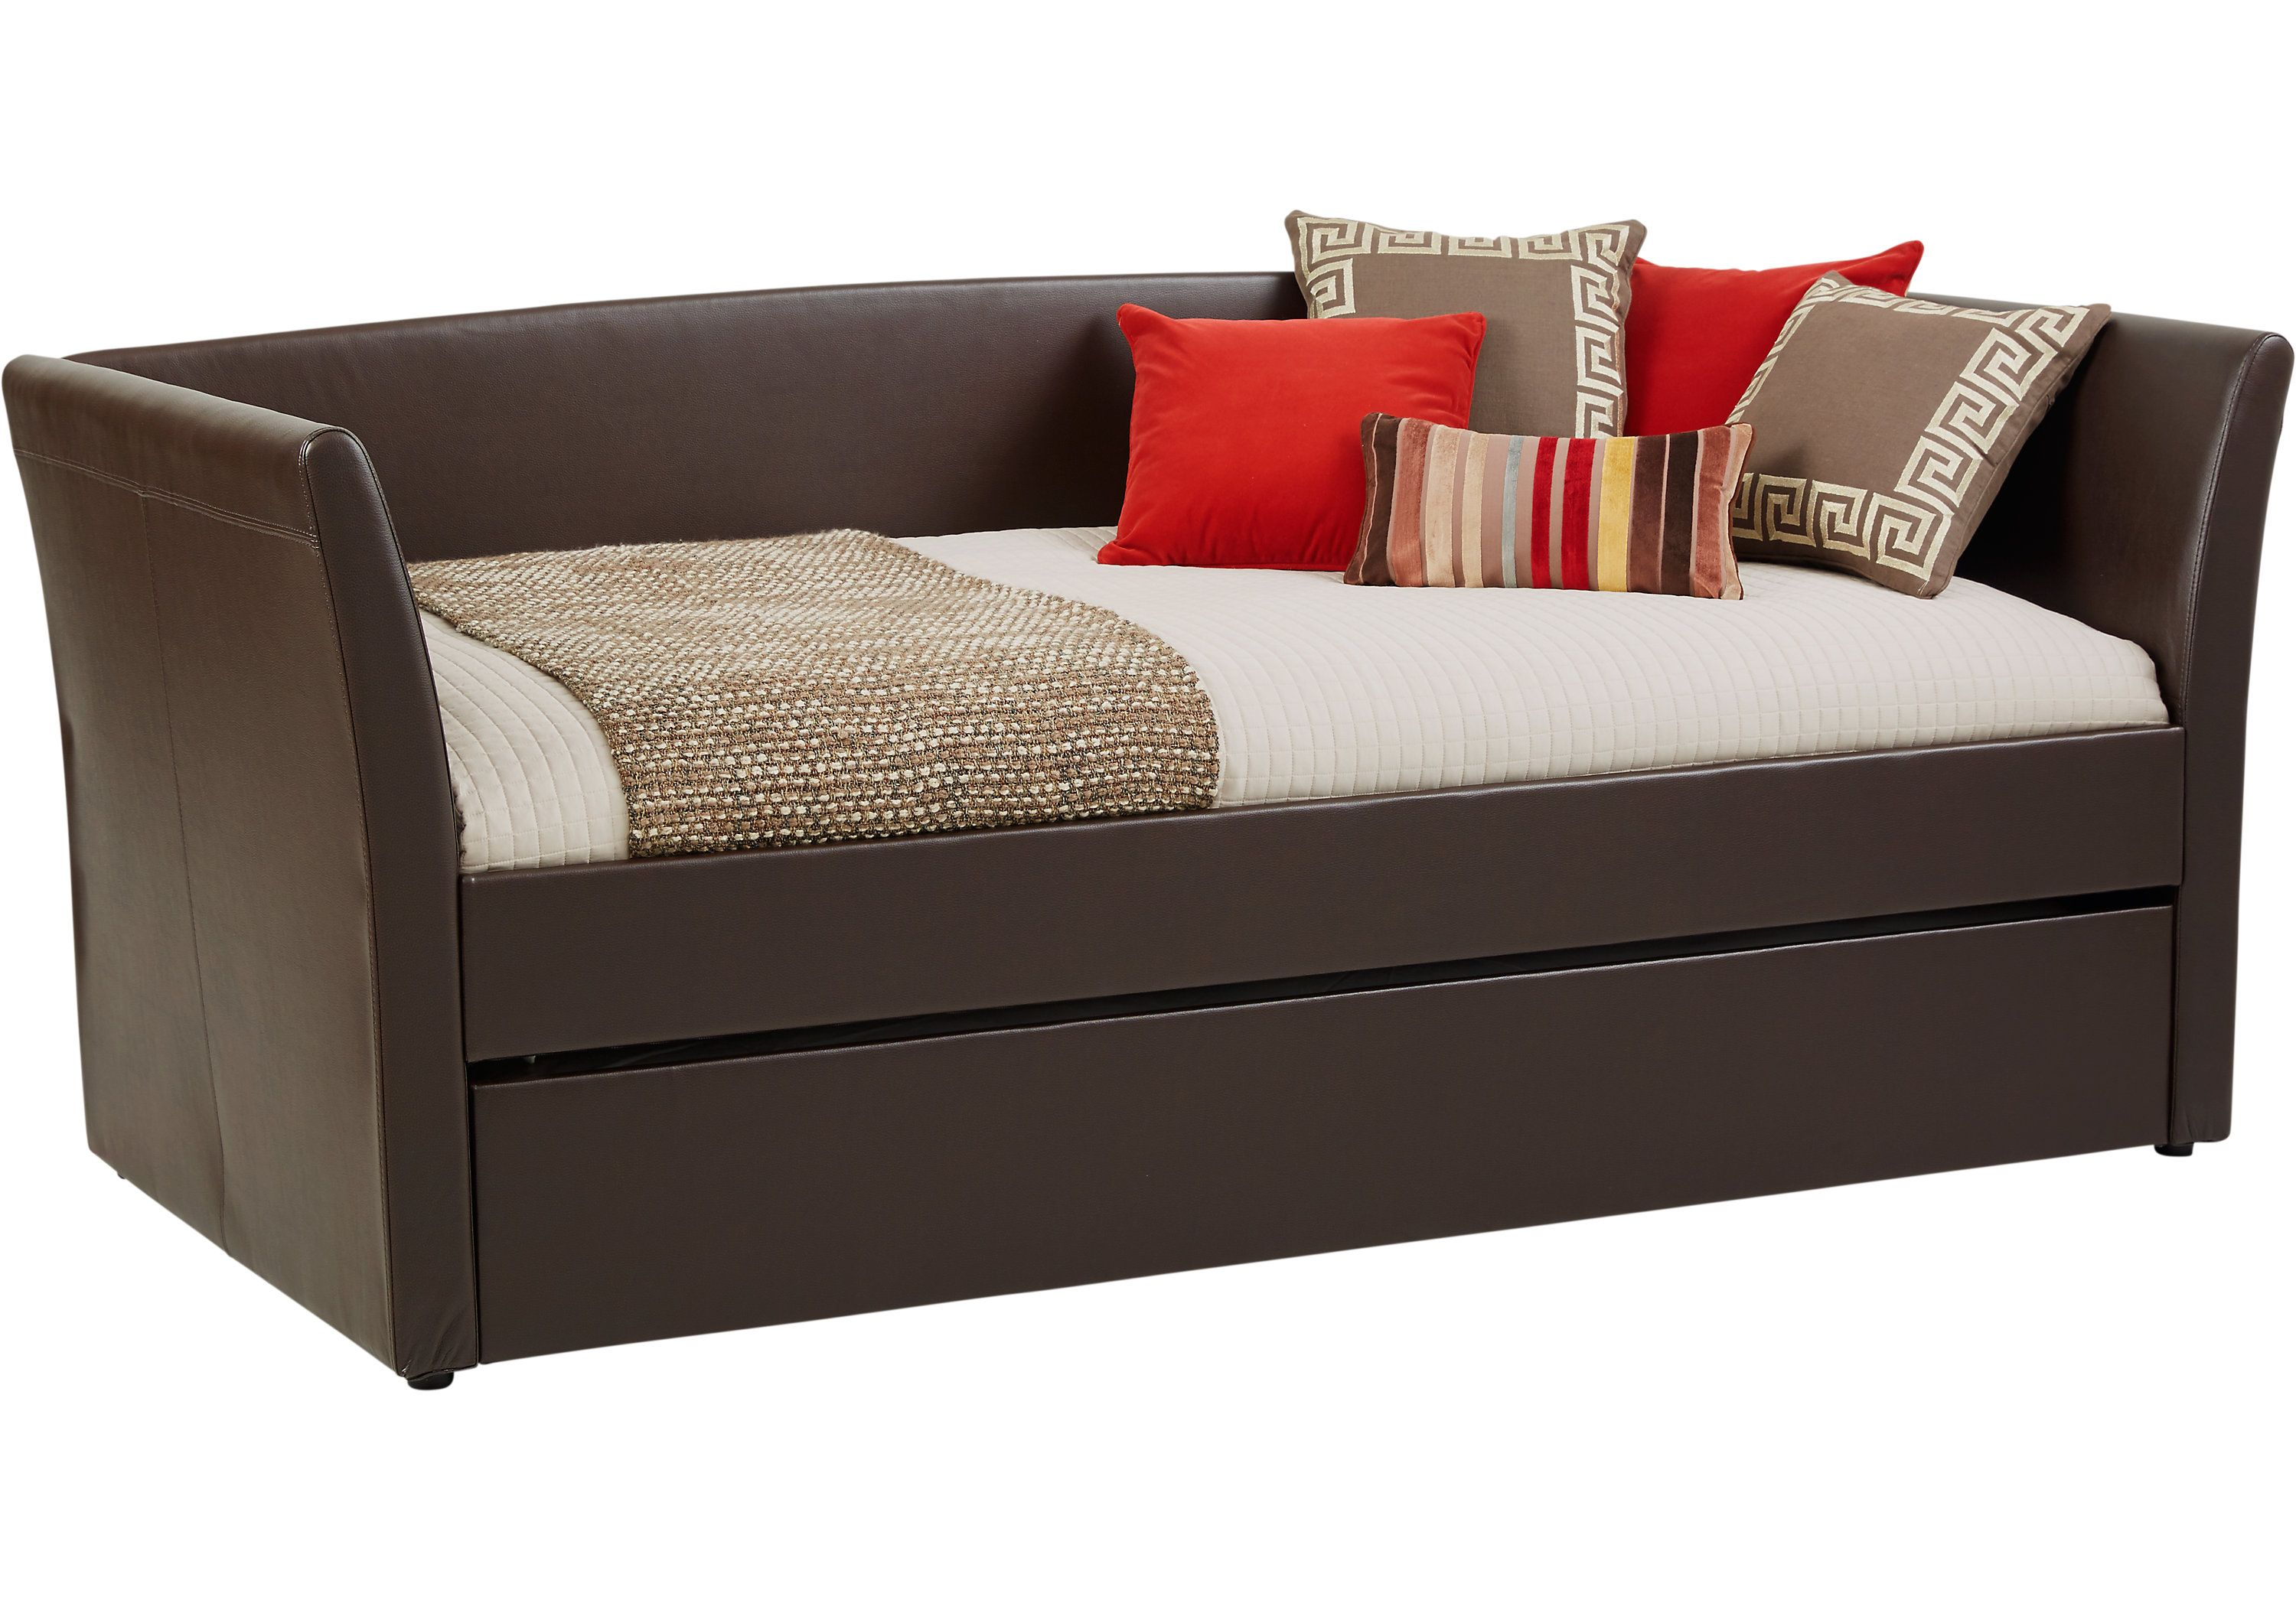 Brianne Brown Daybed Ottomans Dark Wood Daybed with